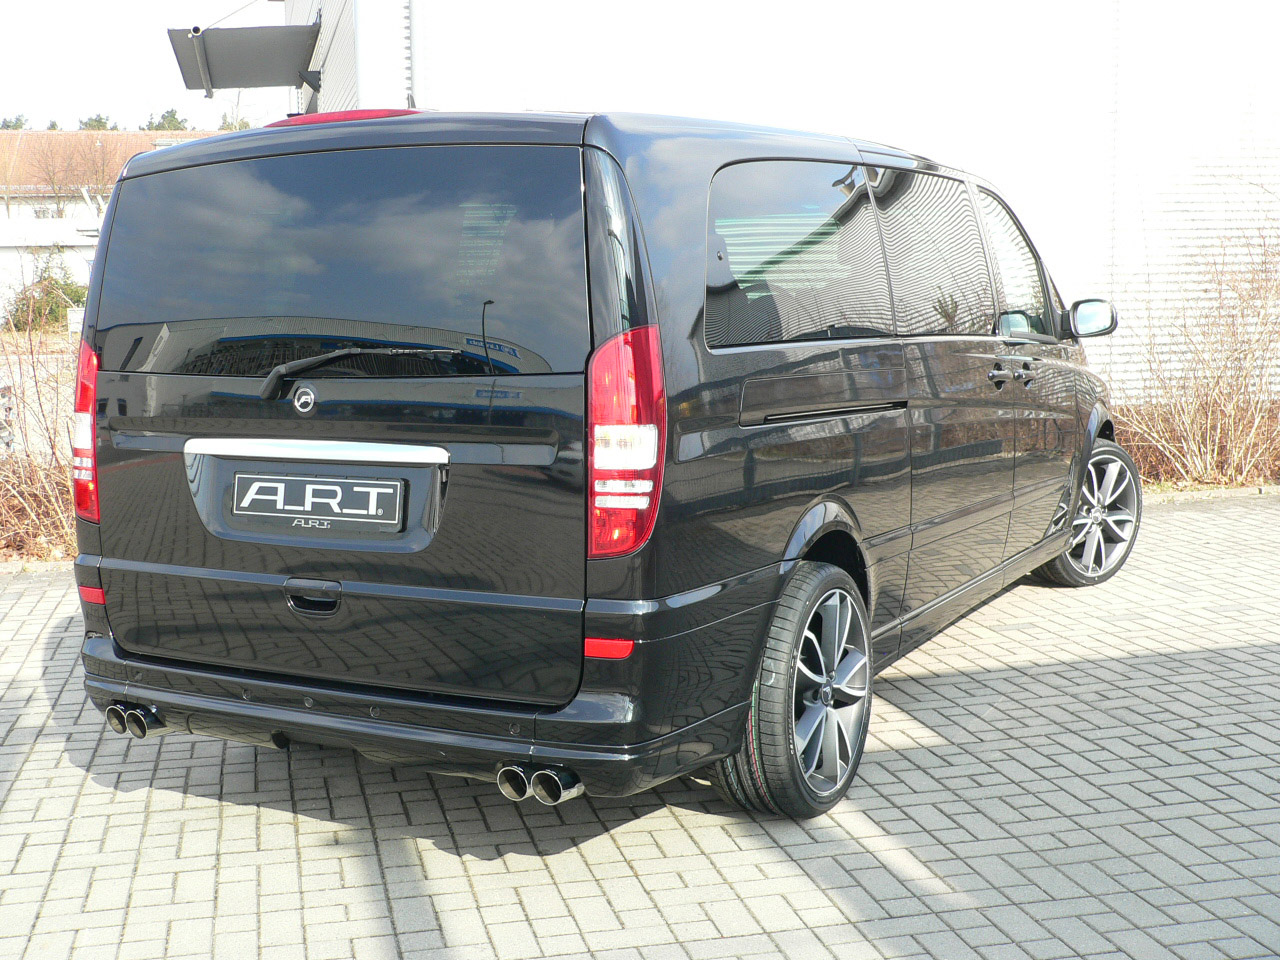 Cabin Air Filter Cost >> A.R.T tuning beutifies the Mercedes-Benz Viano